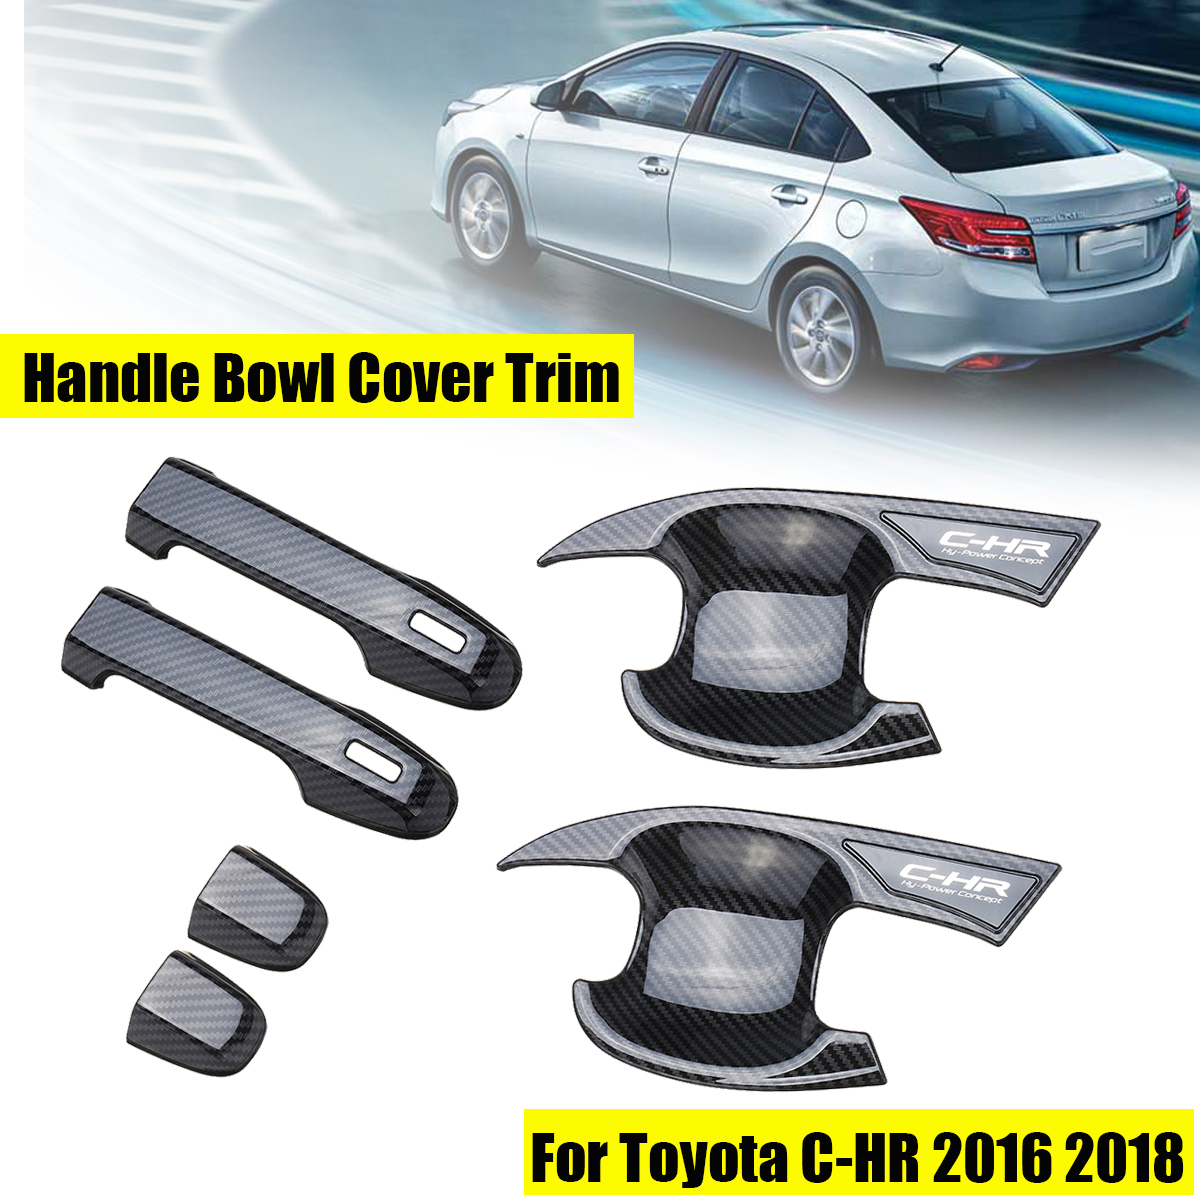 Front Right Exterior Outside External Door handle for 2000-2004 Toyota Avalon